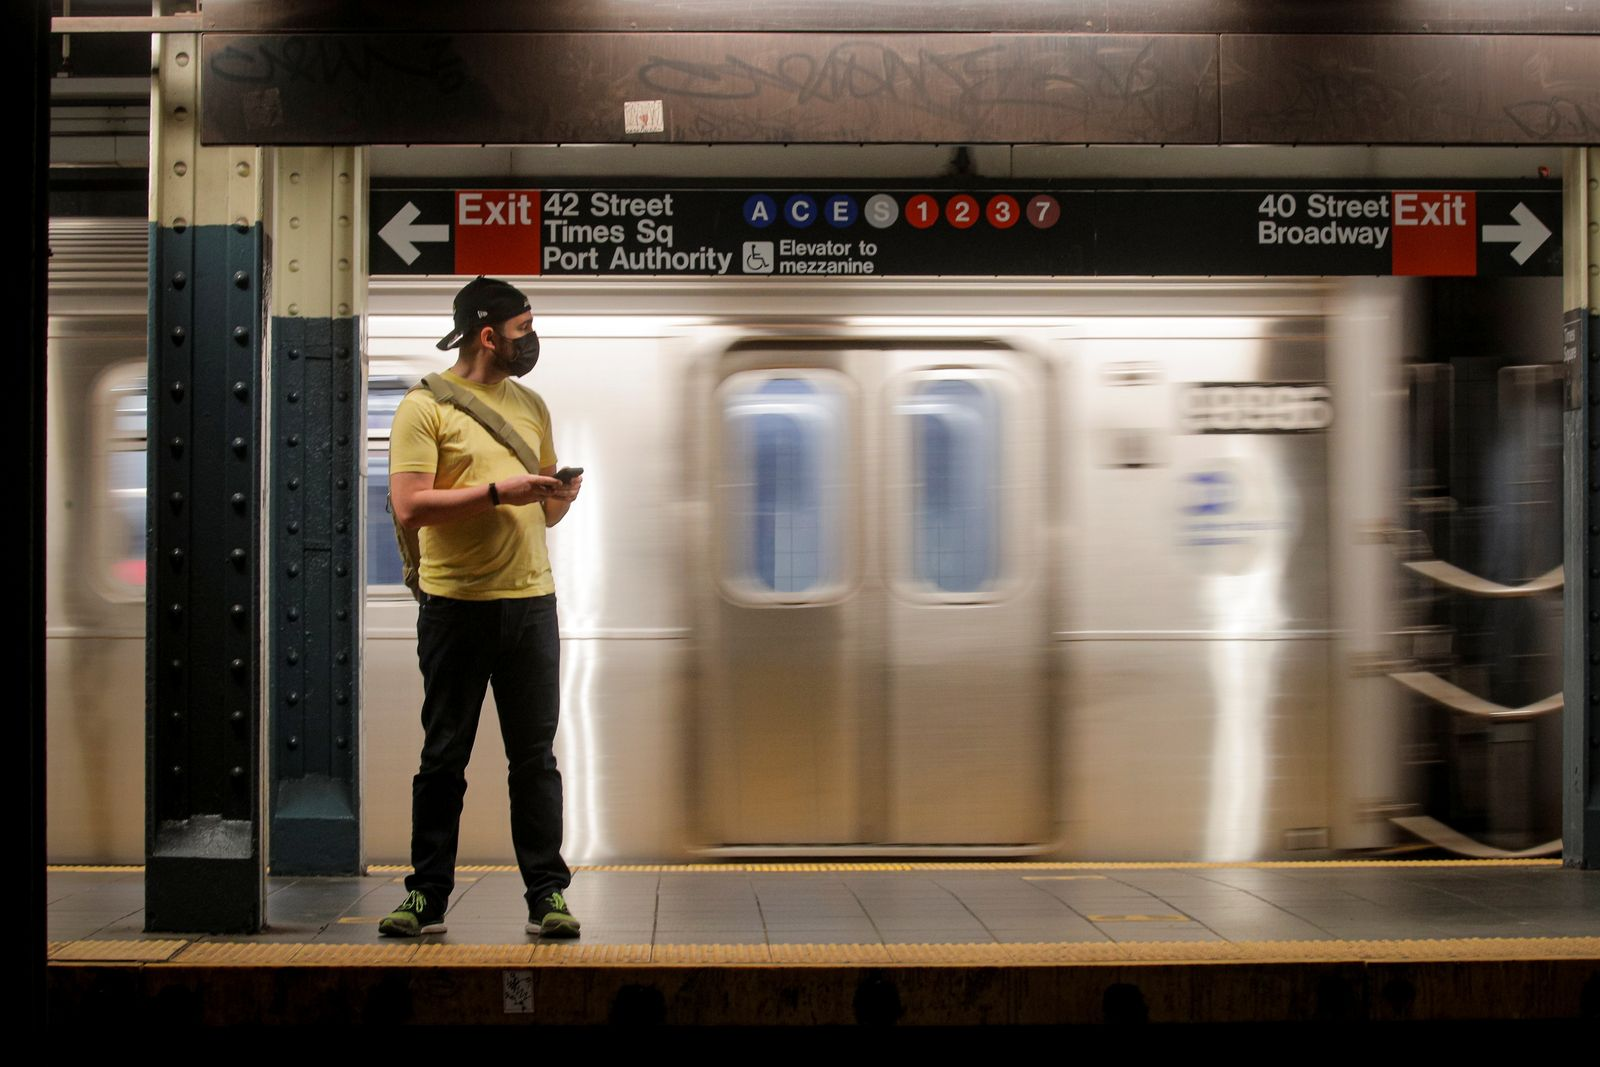 A passenger waits on the platform to ride aboard the MTA's New York City Transit subway, in New York